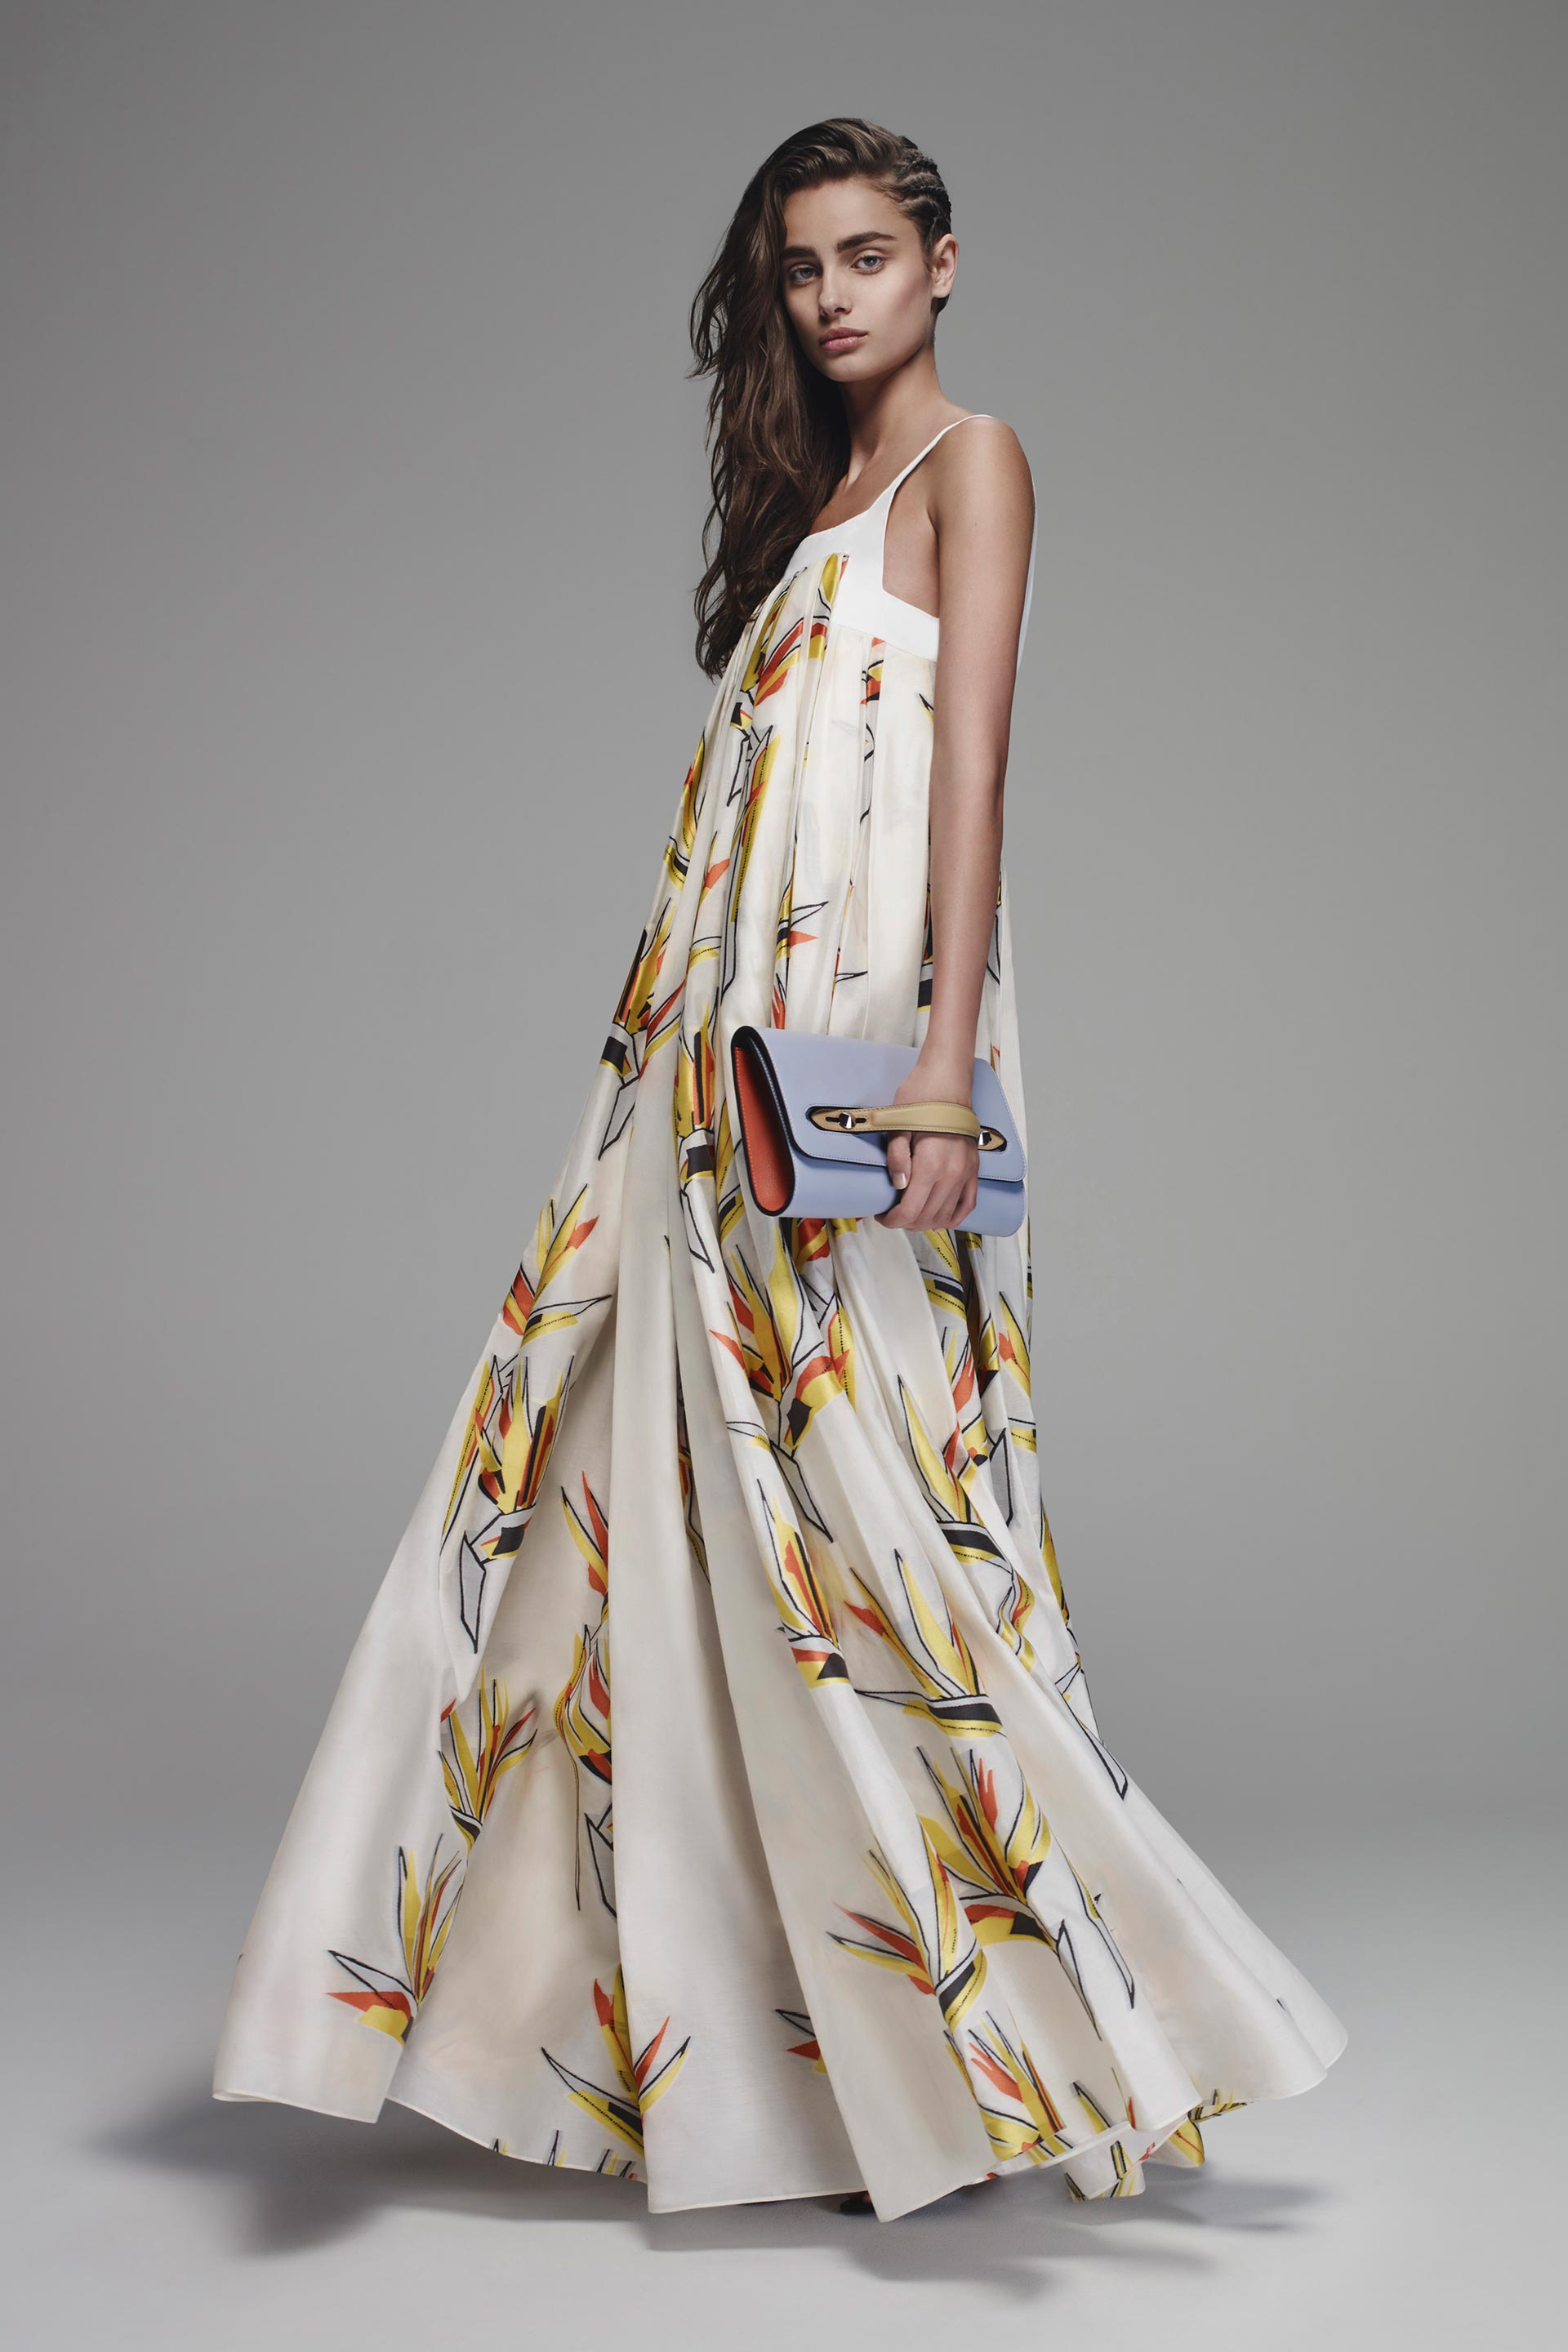 Fendi's floor length dress with birds of paradise print